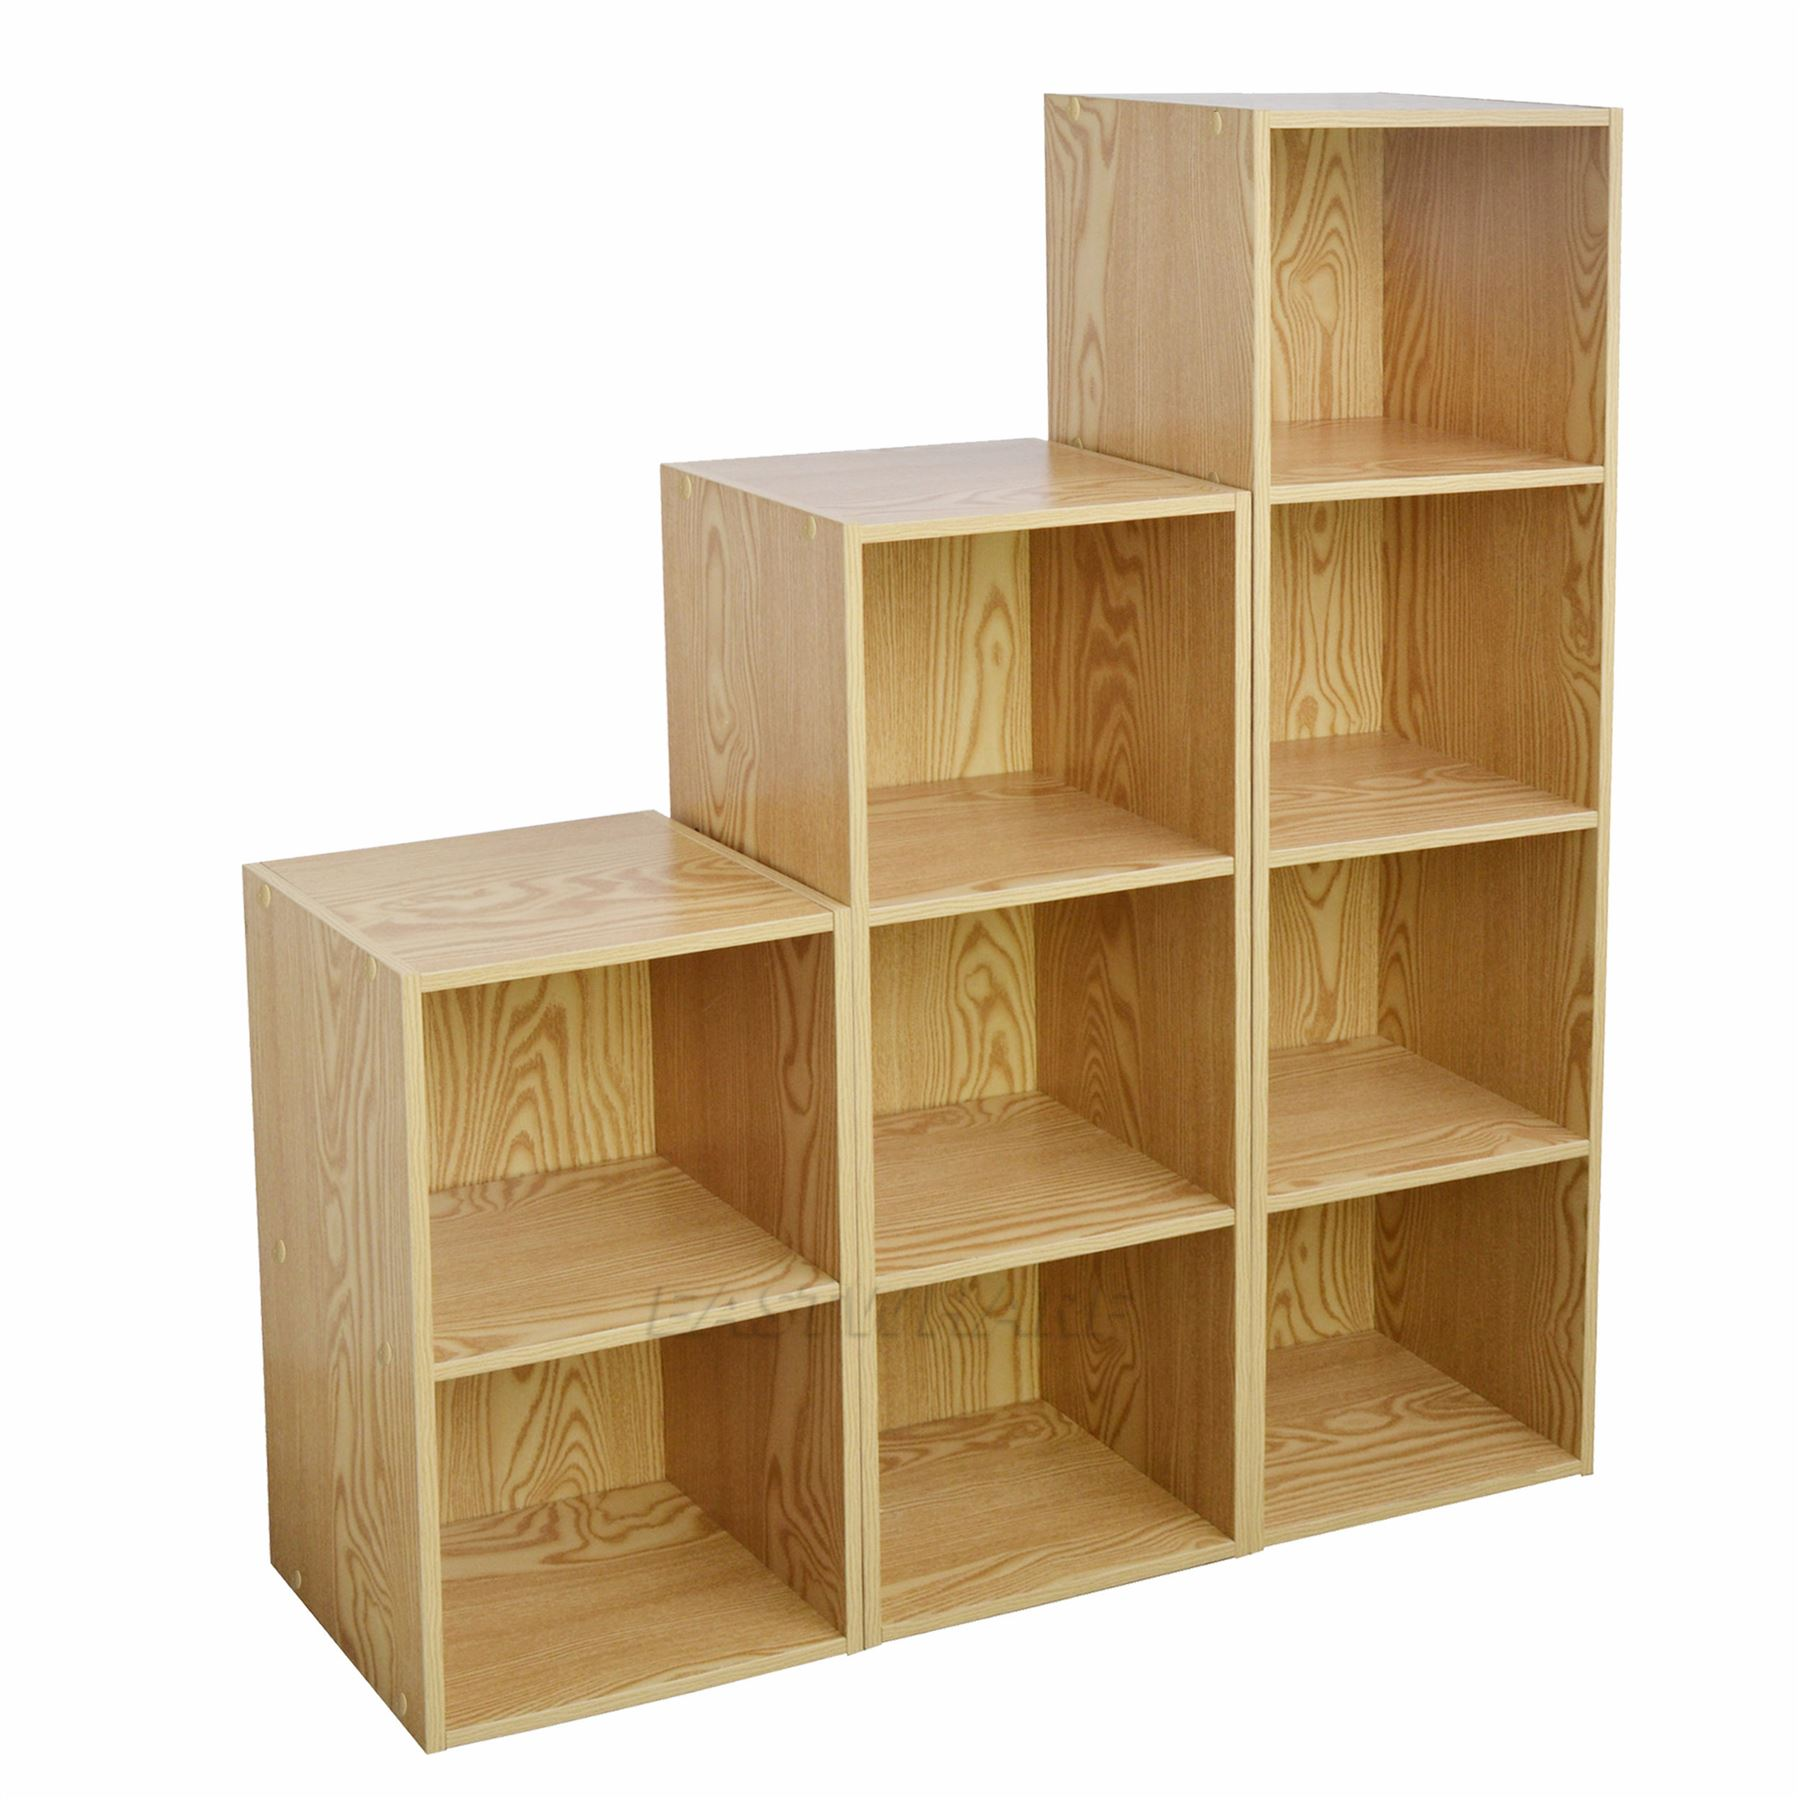 Wooden bookcase shelving display storage wood shelf